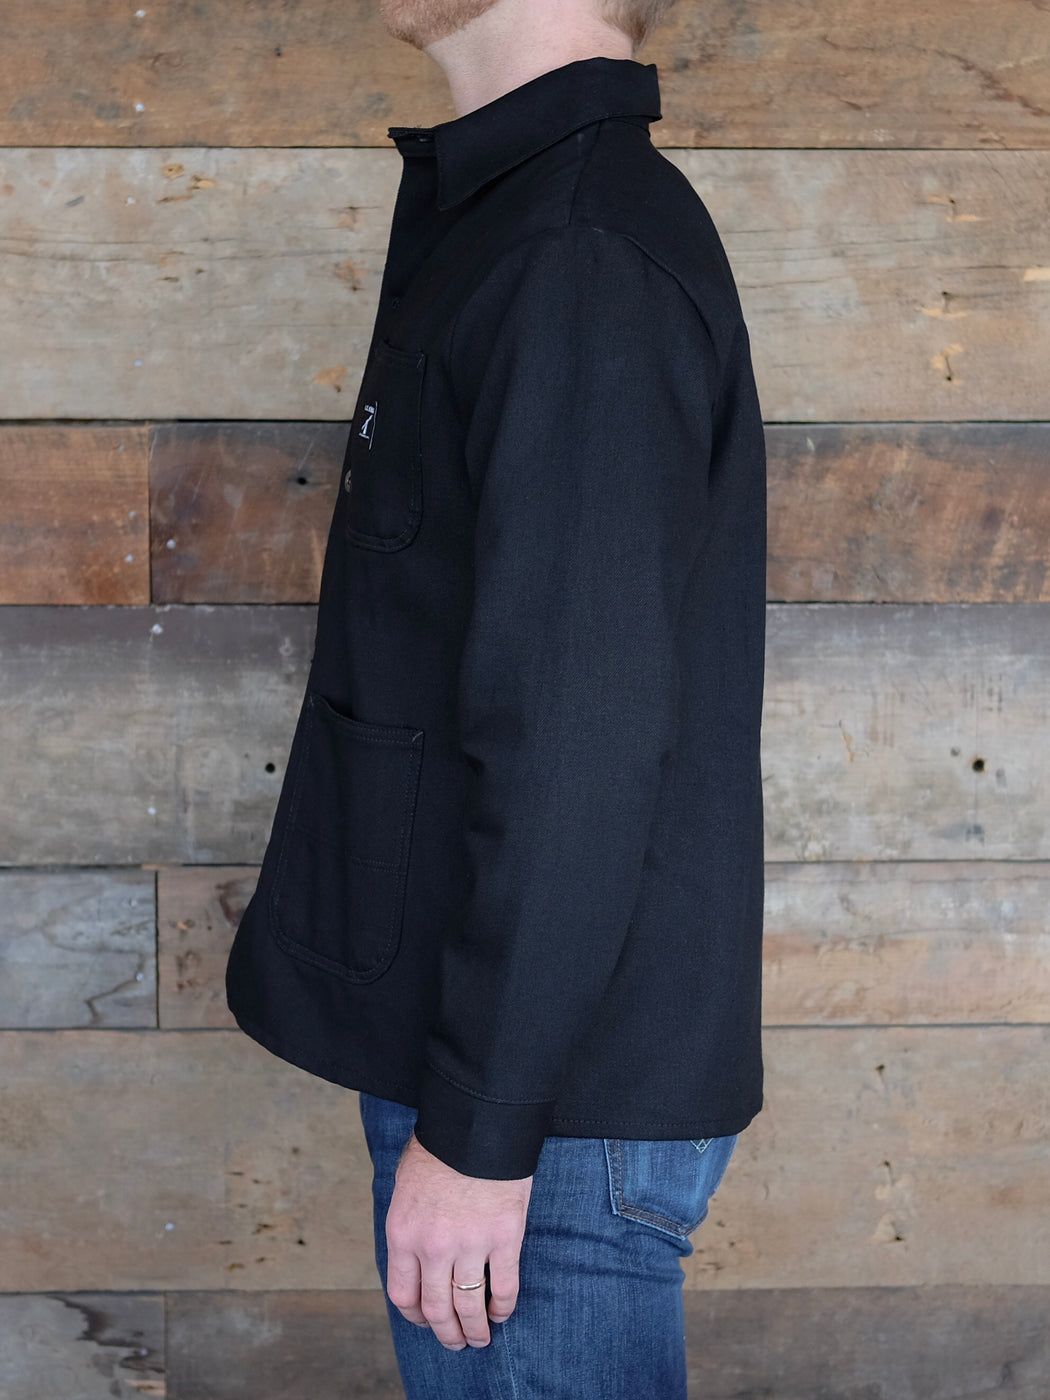 Black Denim Chore Coat, Outerwear, LC King - Felding Co